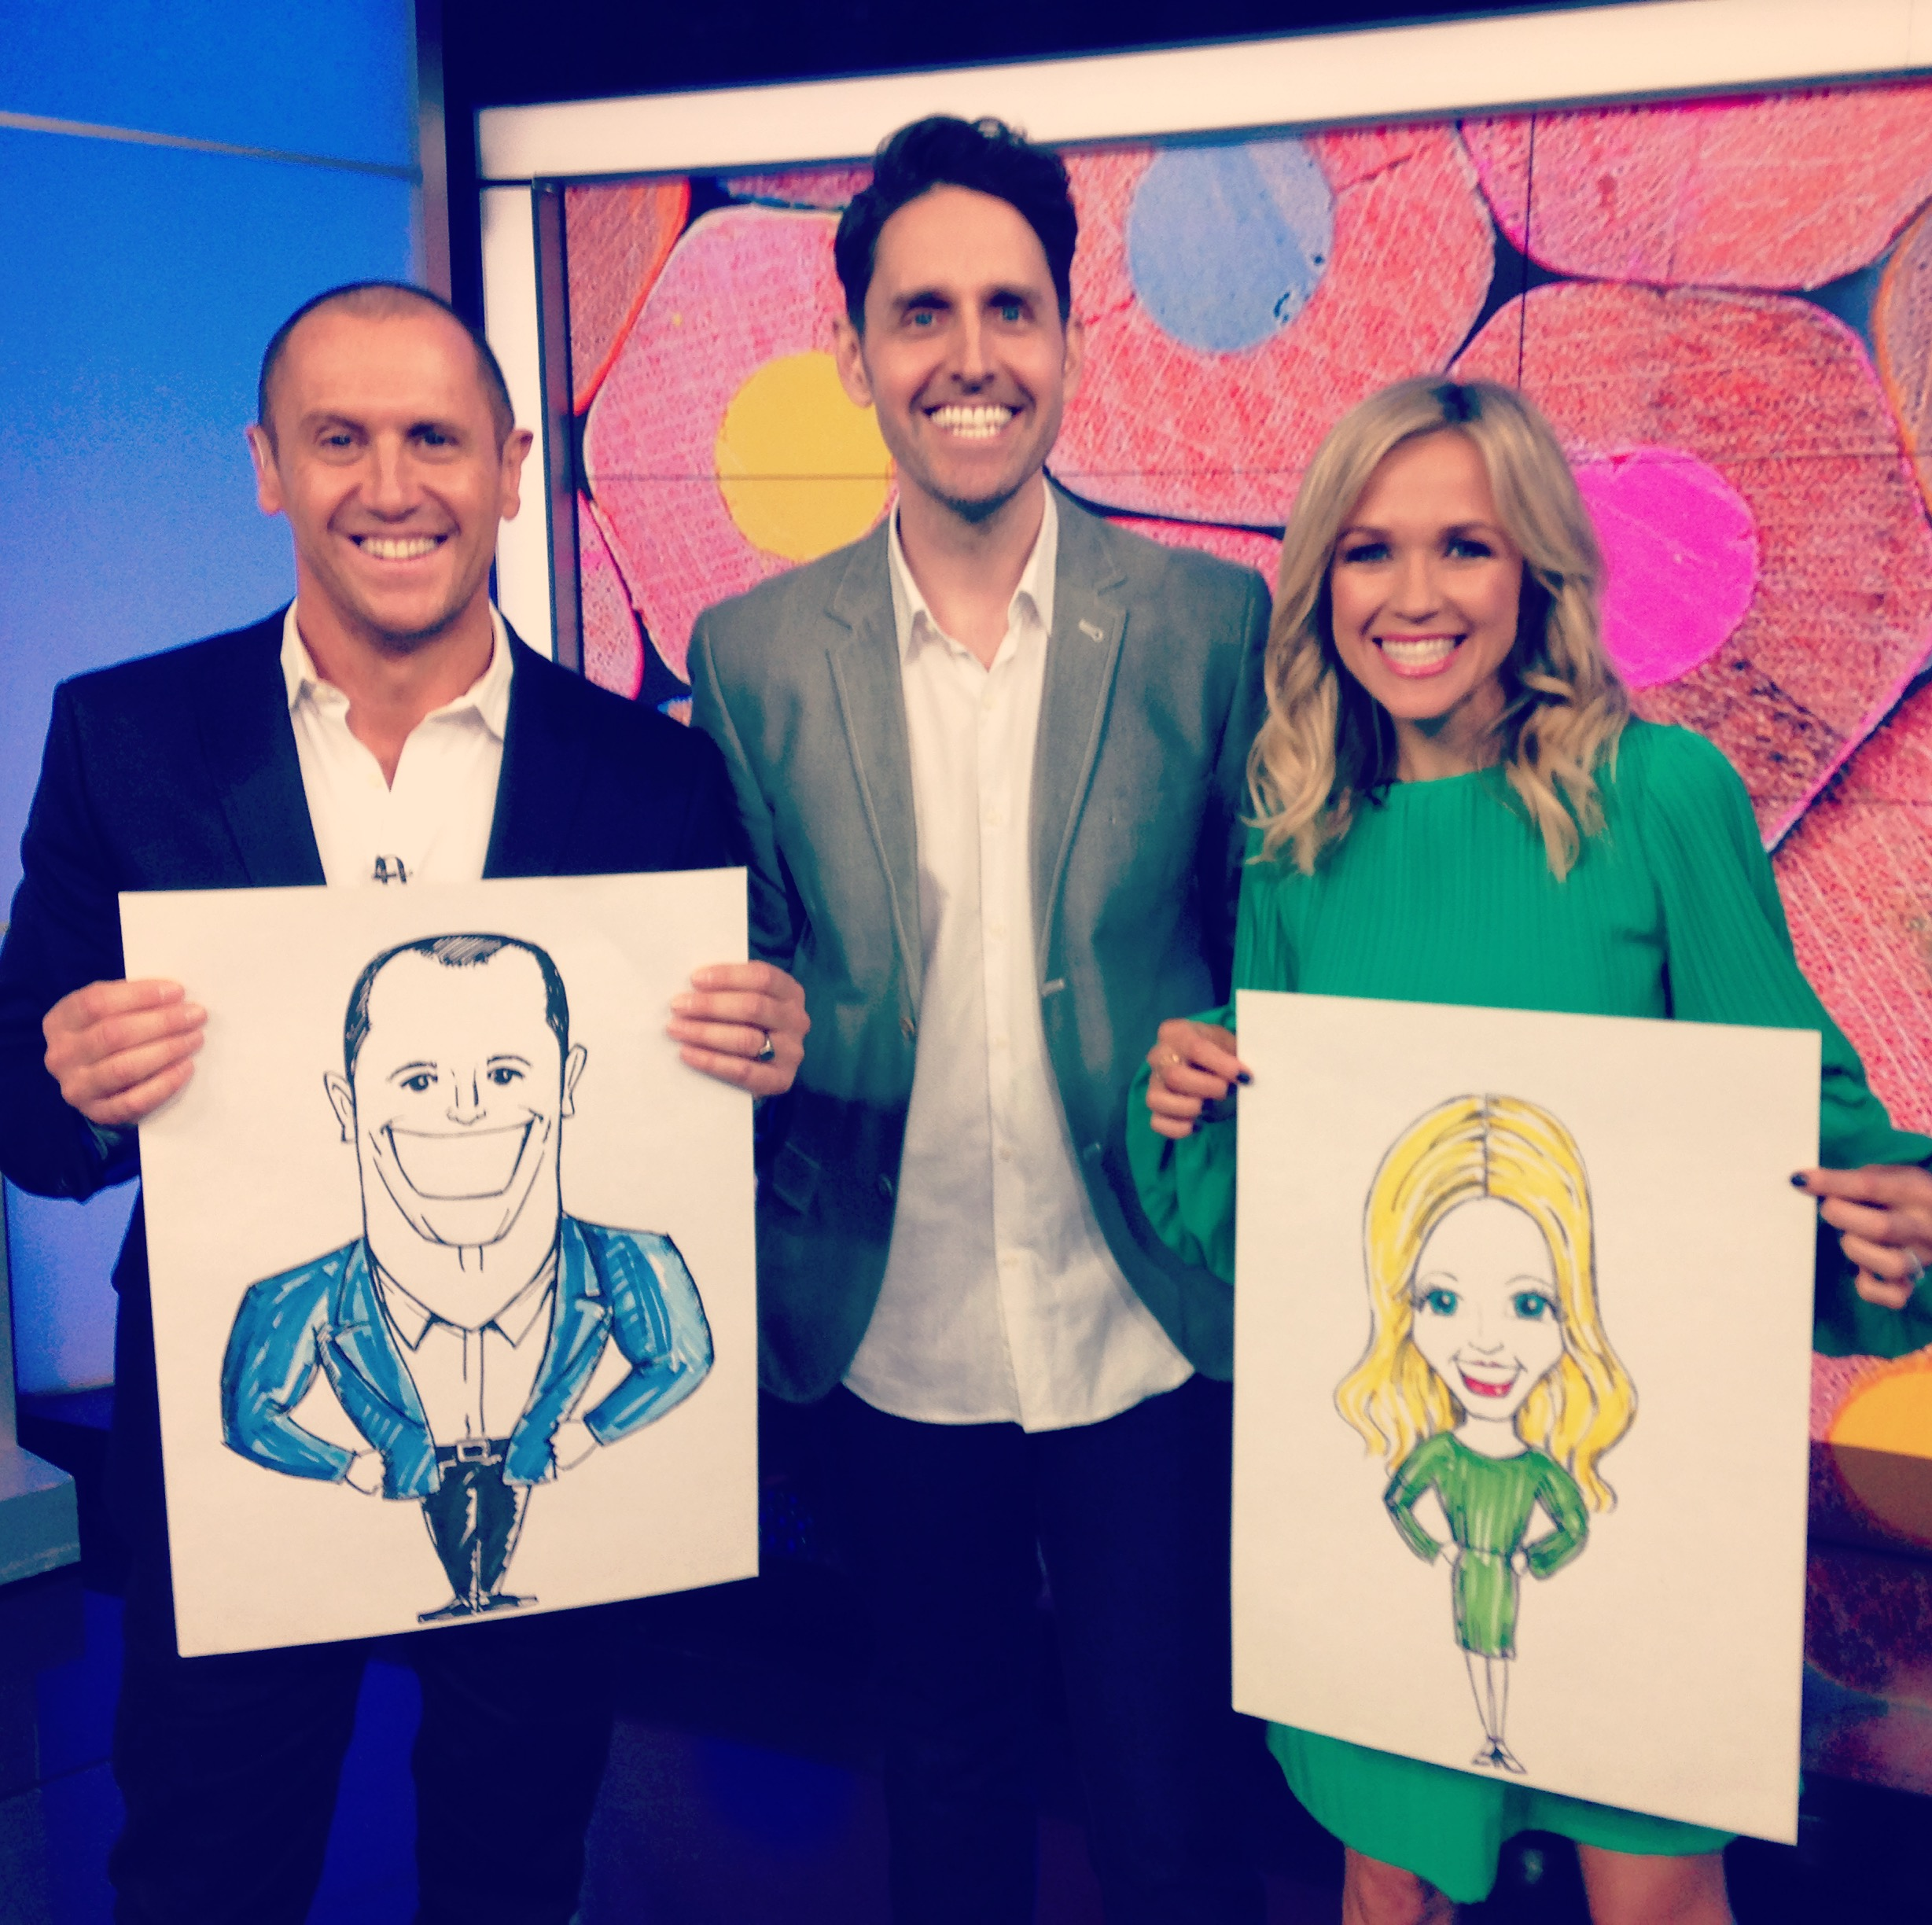 Larry Emdur and Sarah Cummings from The Morning Show on 7 holding up their caricatures drawn by author and illustrator Matt Cosgrove.